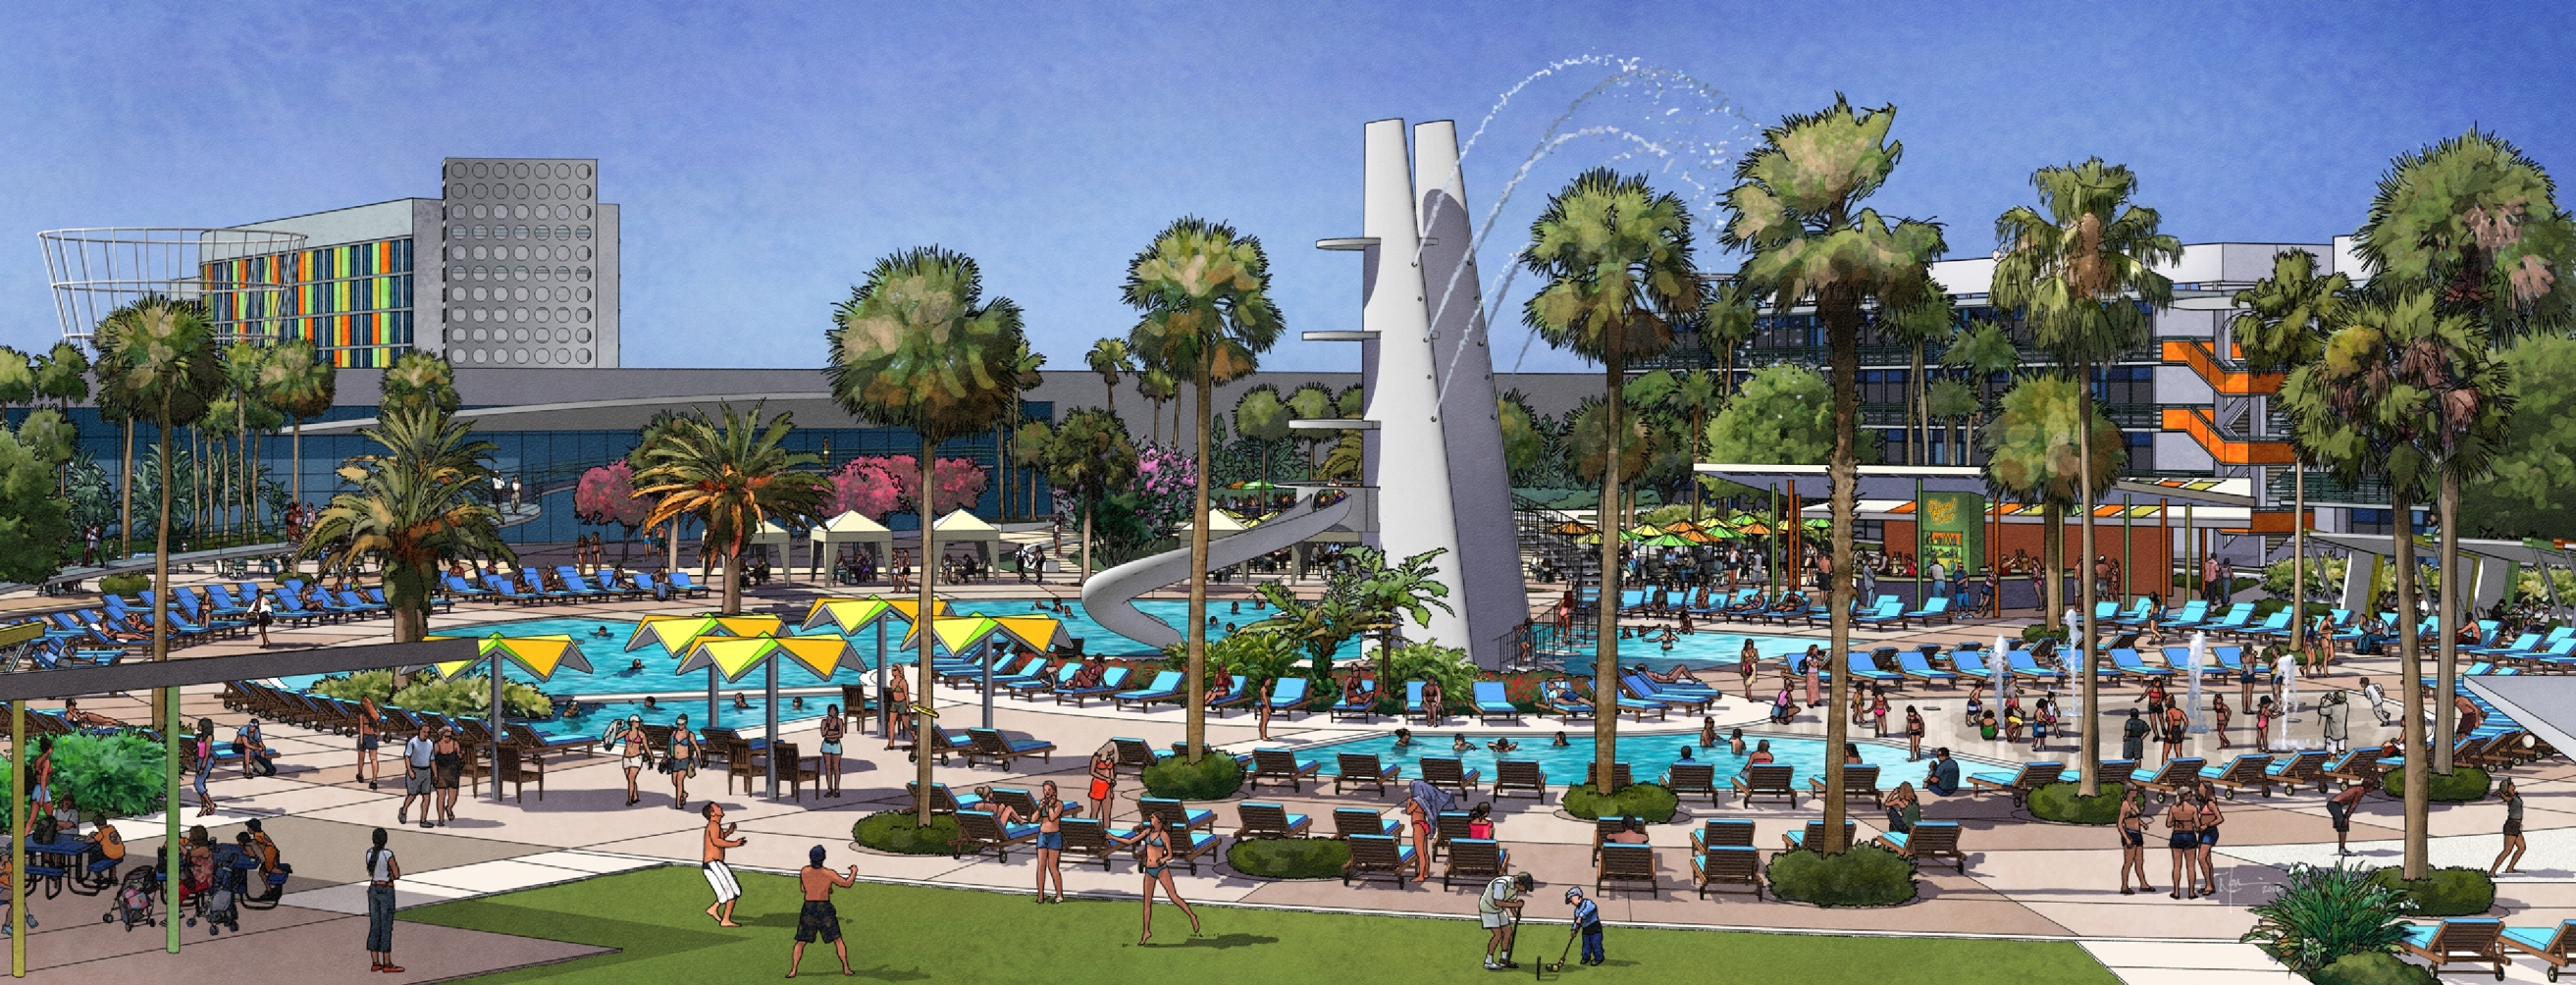 First Look at Cabana Bay Resort Layout – ParkRumors.com on